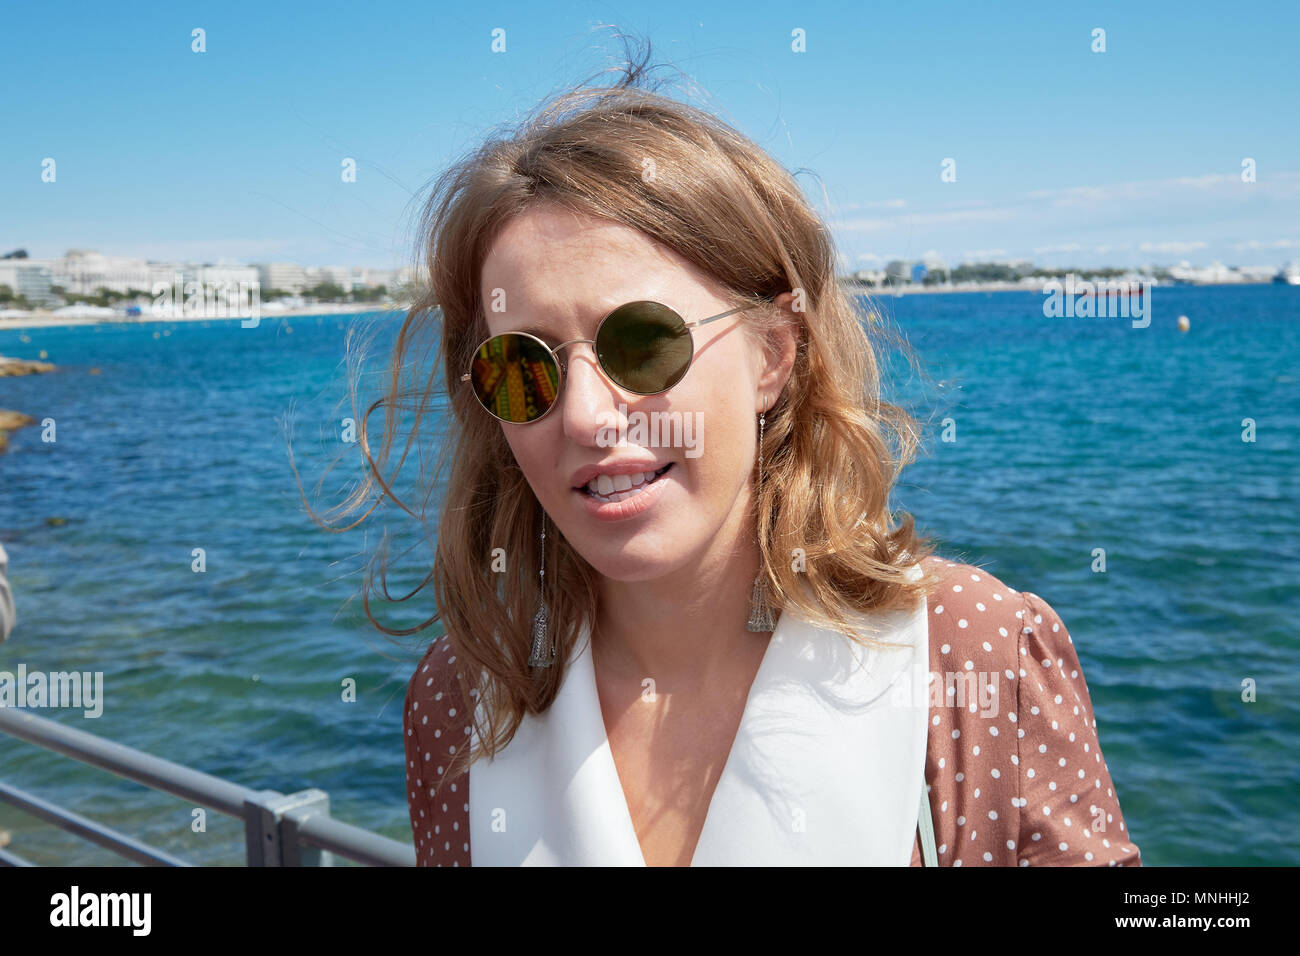 Sobchak with her husband went to France for a honeymoon 02/21/2013